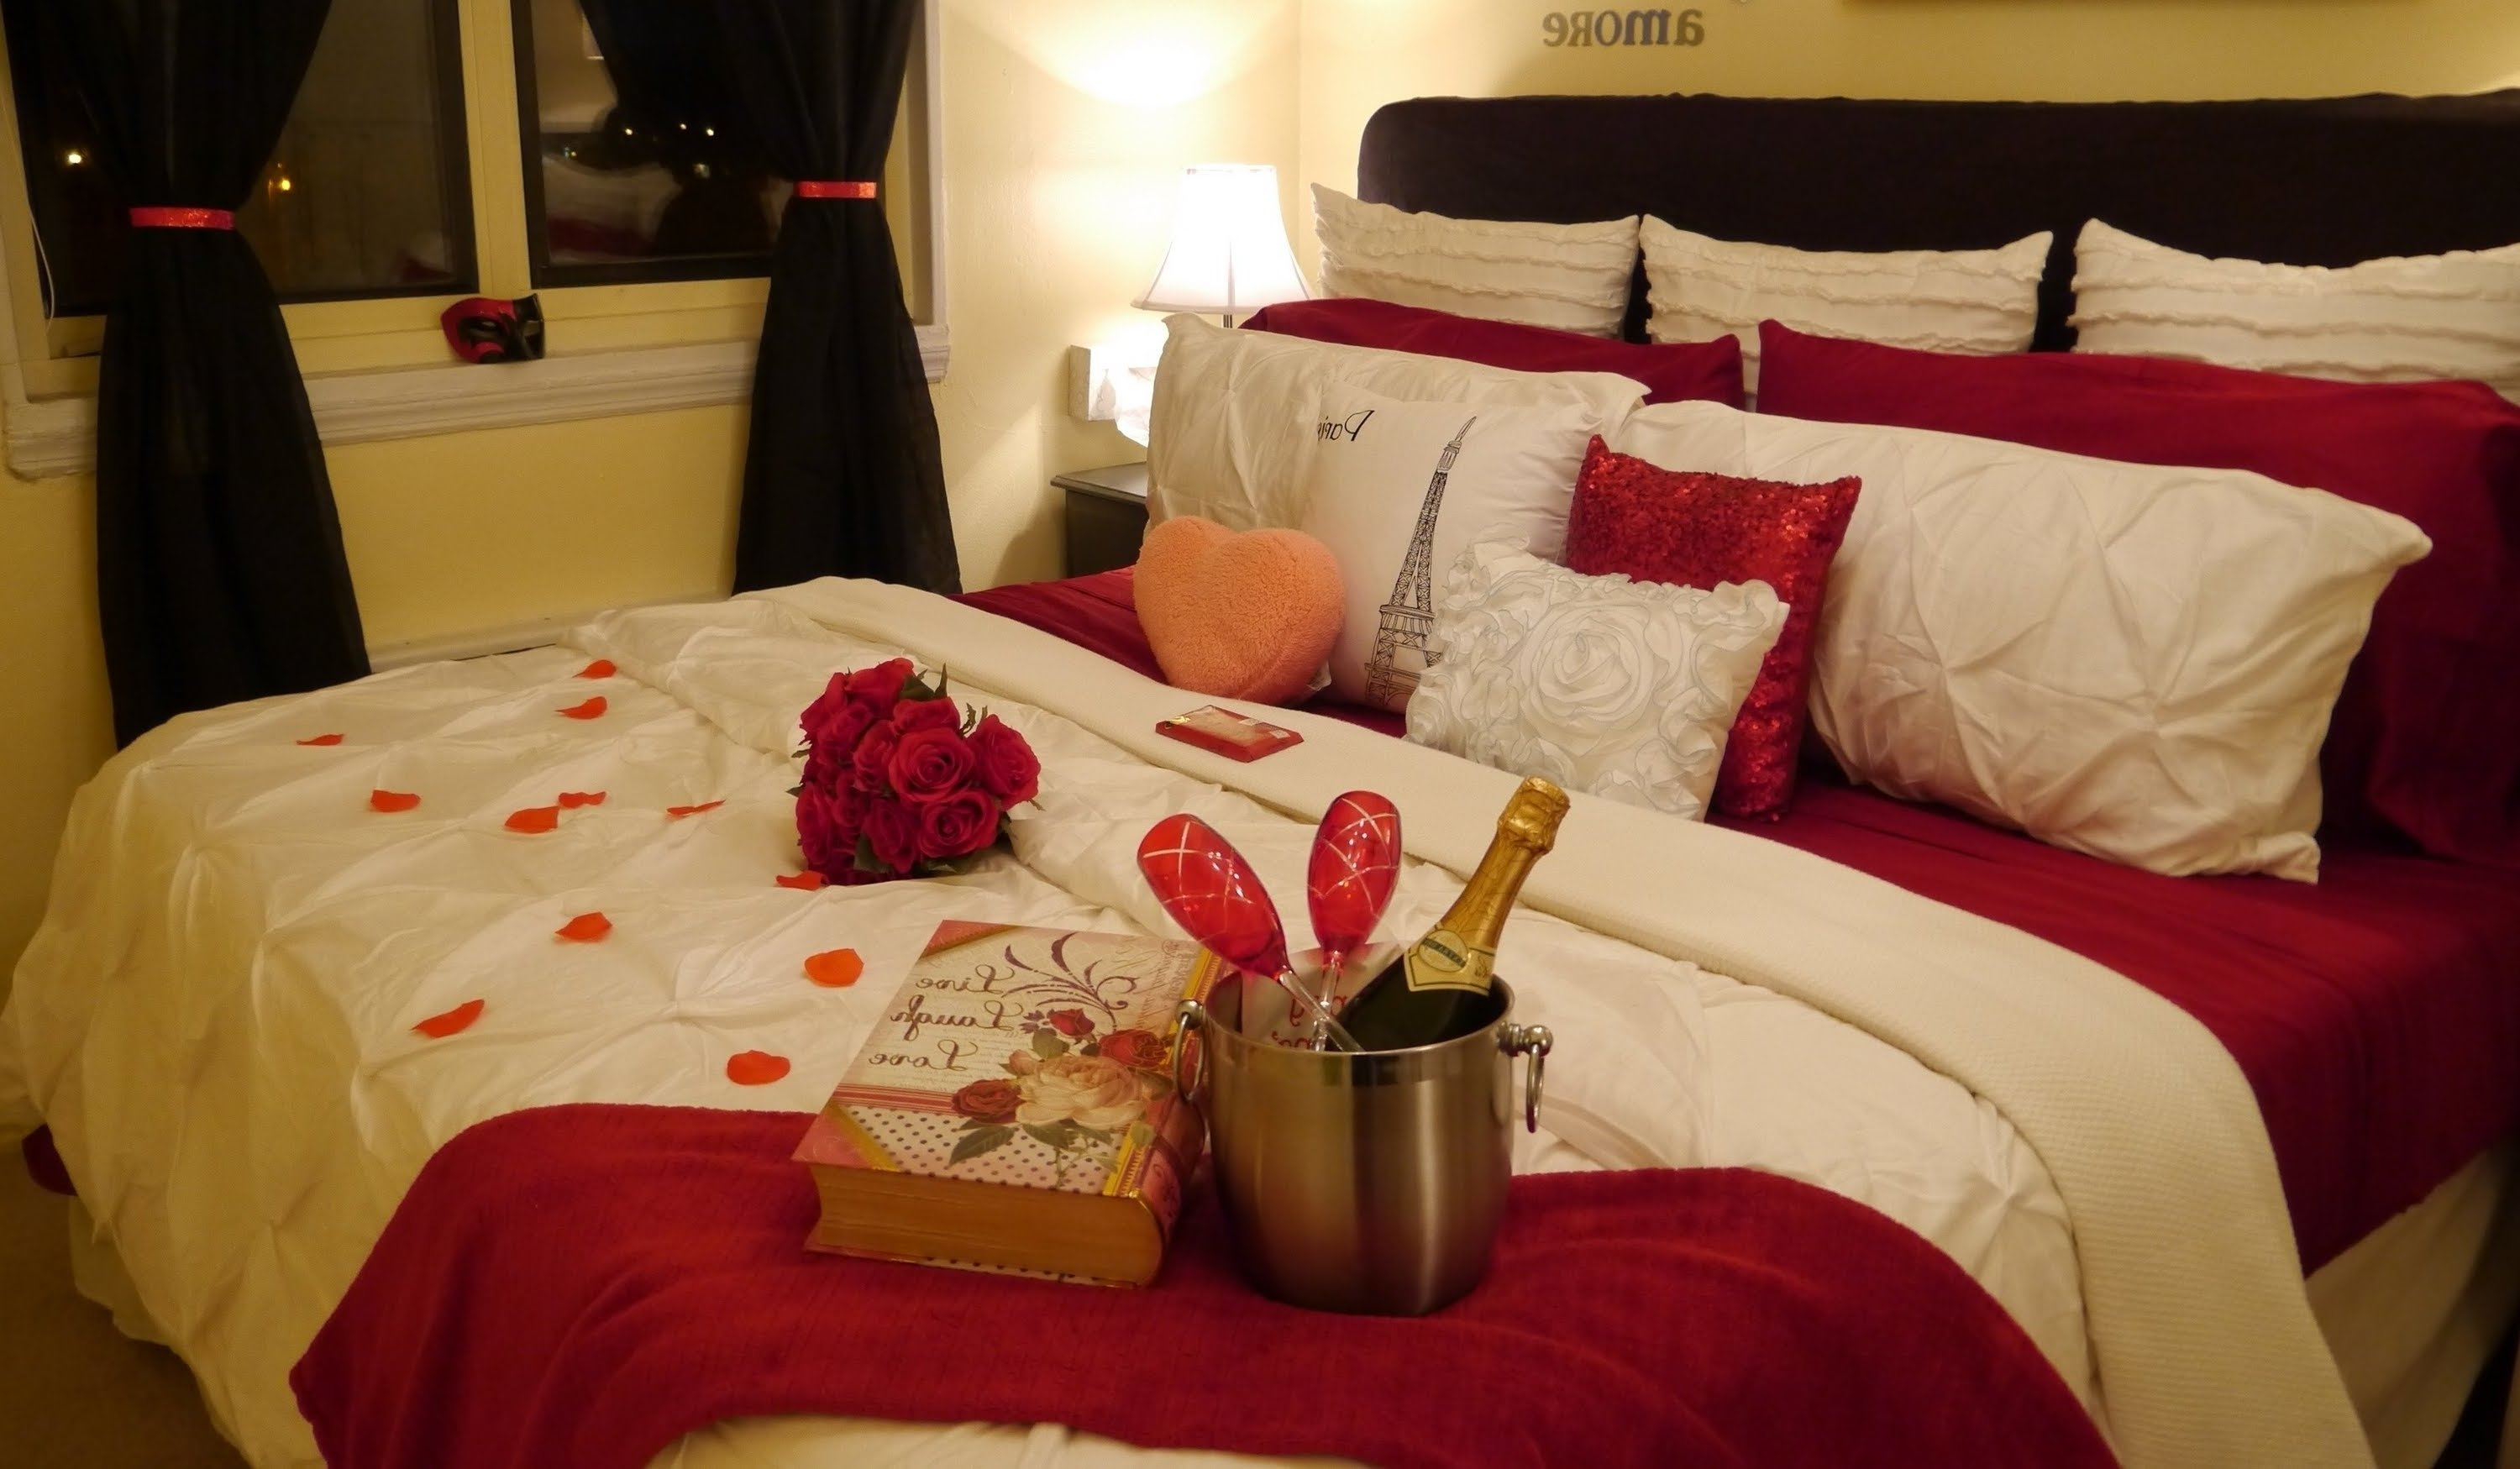 10 Fabulous Ideas For A Romantic Night In A Hotel ideas romantic hotel room ideas 2020